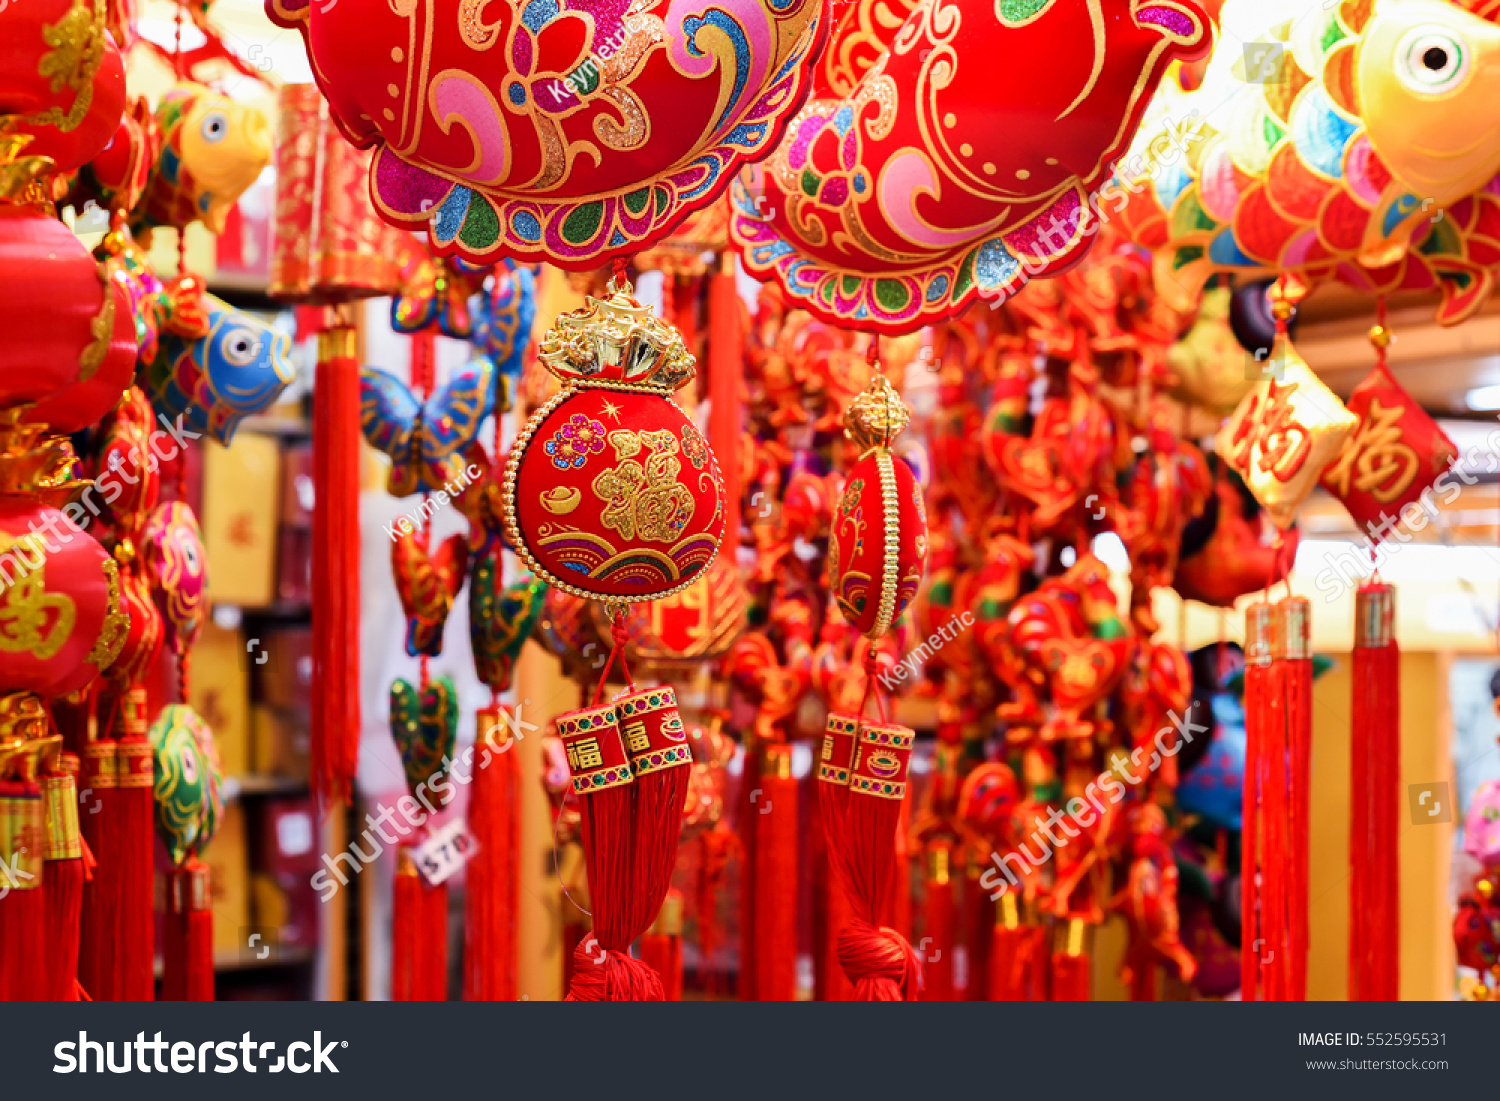 Chinese new year. Traditional Chinese decorations.